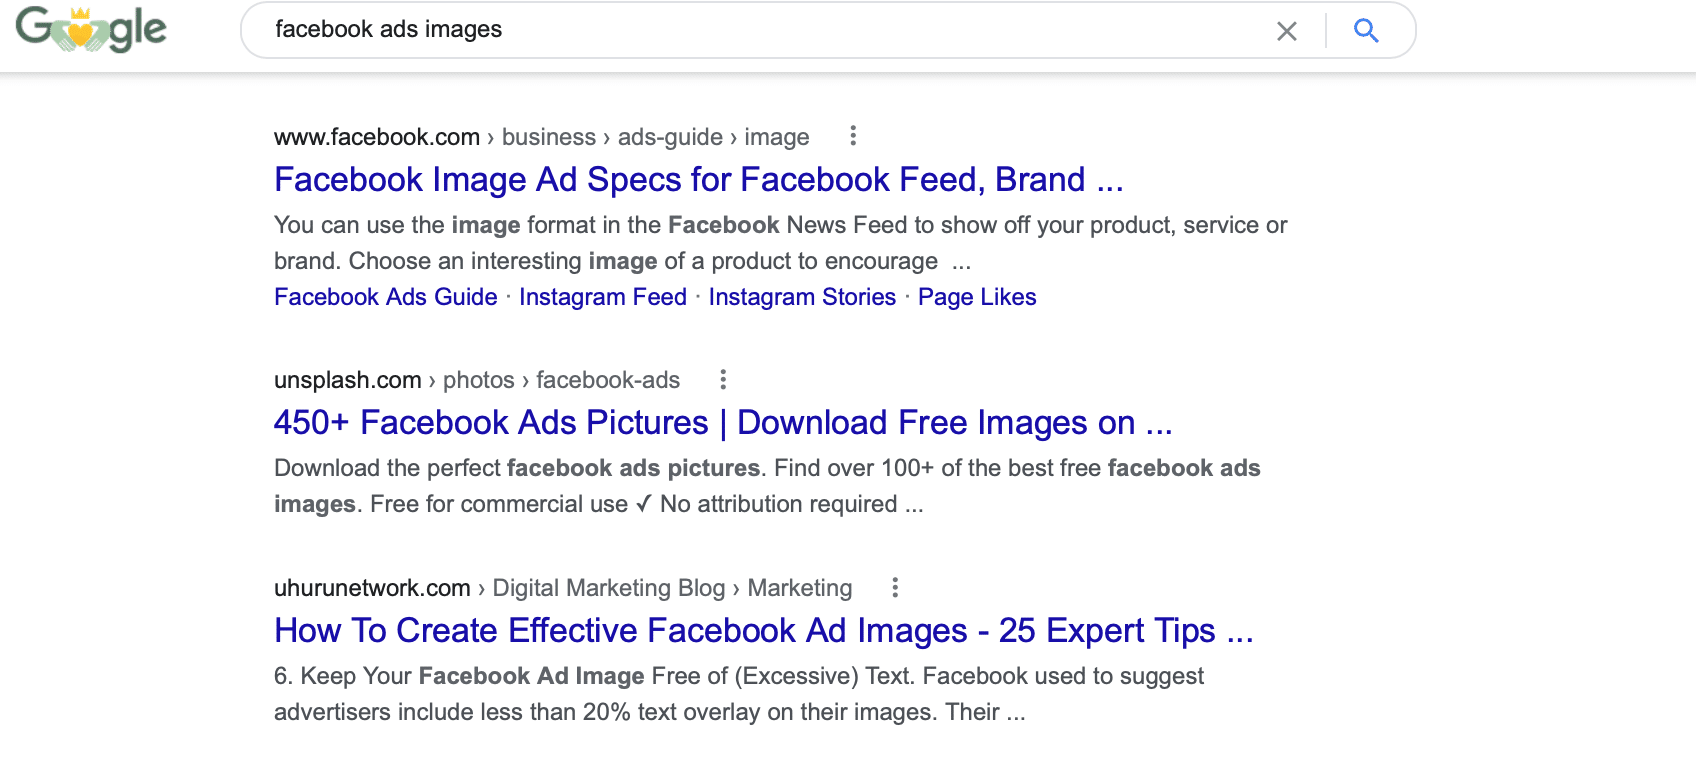 Google search for Facebook ad images